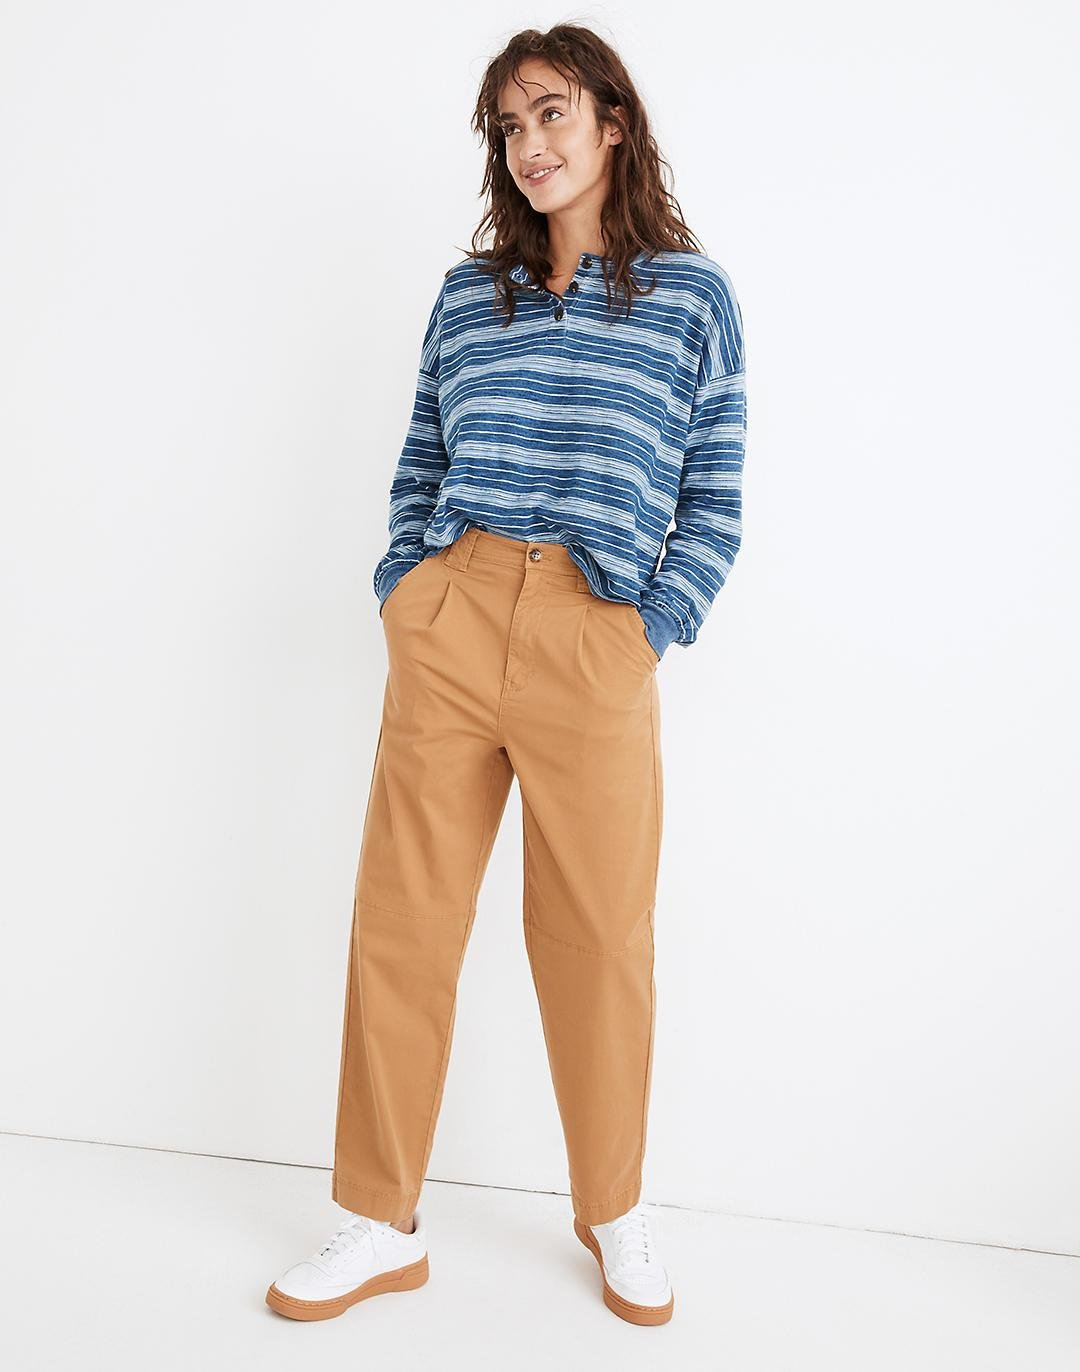 Pleated Slouchy Chino Pants